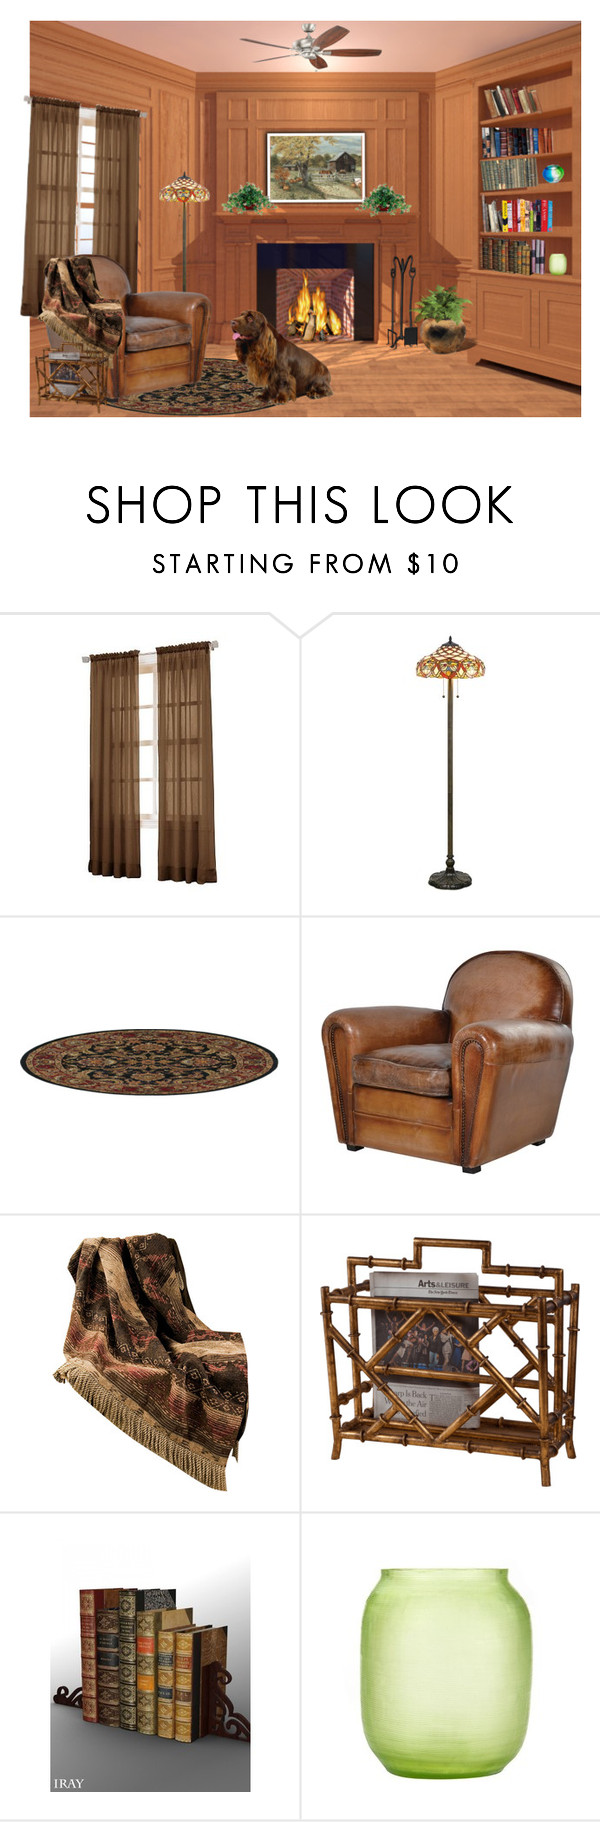 """""""Reading Nook"""" by sjlew ❤ liked on Polyvore featuring interior, interiors, interior design, home, home decor, interior decorating, No. 918, HiEnd Accents, Dessau Home and Bambola"""